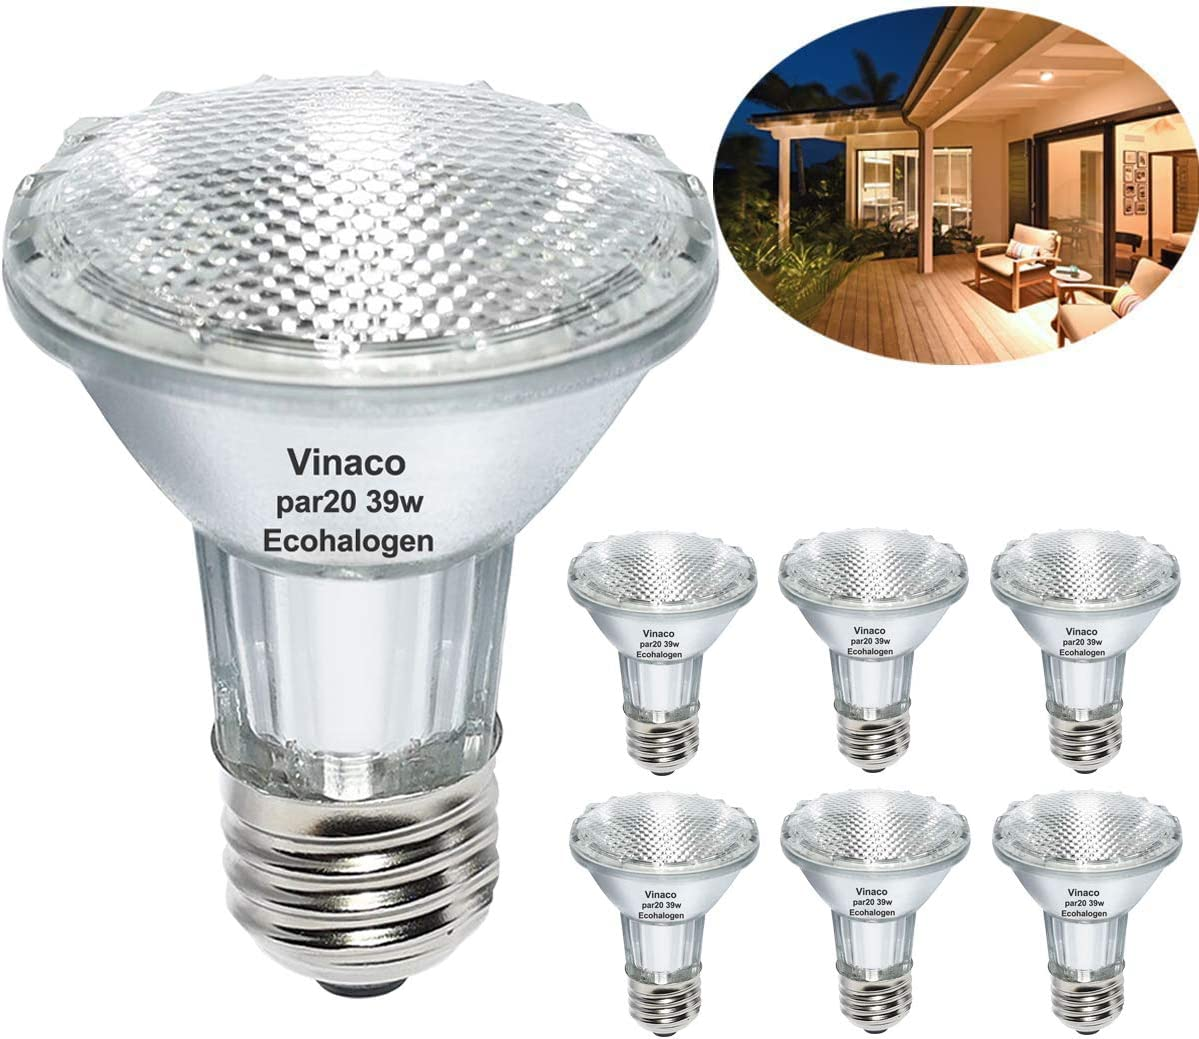 Vinaco PAR20 Halogen Light Bulbs, 6PCS 39W PAR20  Halogen Dimmable, 3000k Warm White, PAR20 Flood 39W 120V High Brightness Equivalent 50W for Indoor/Outdoor, Range Hood Light Bulbs, E26/Medium Base